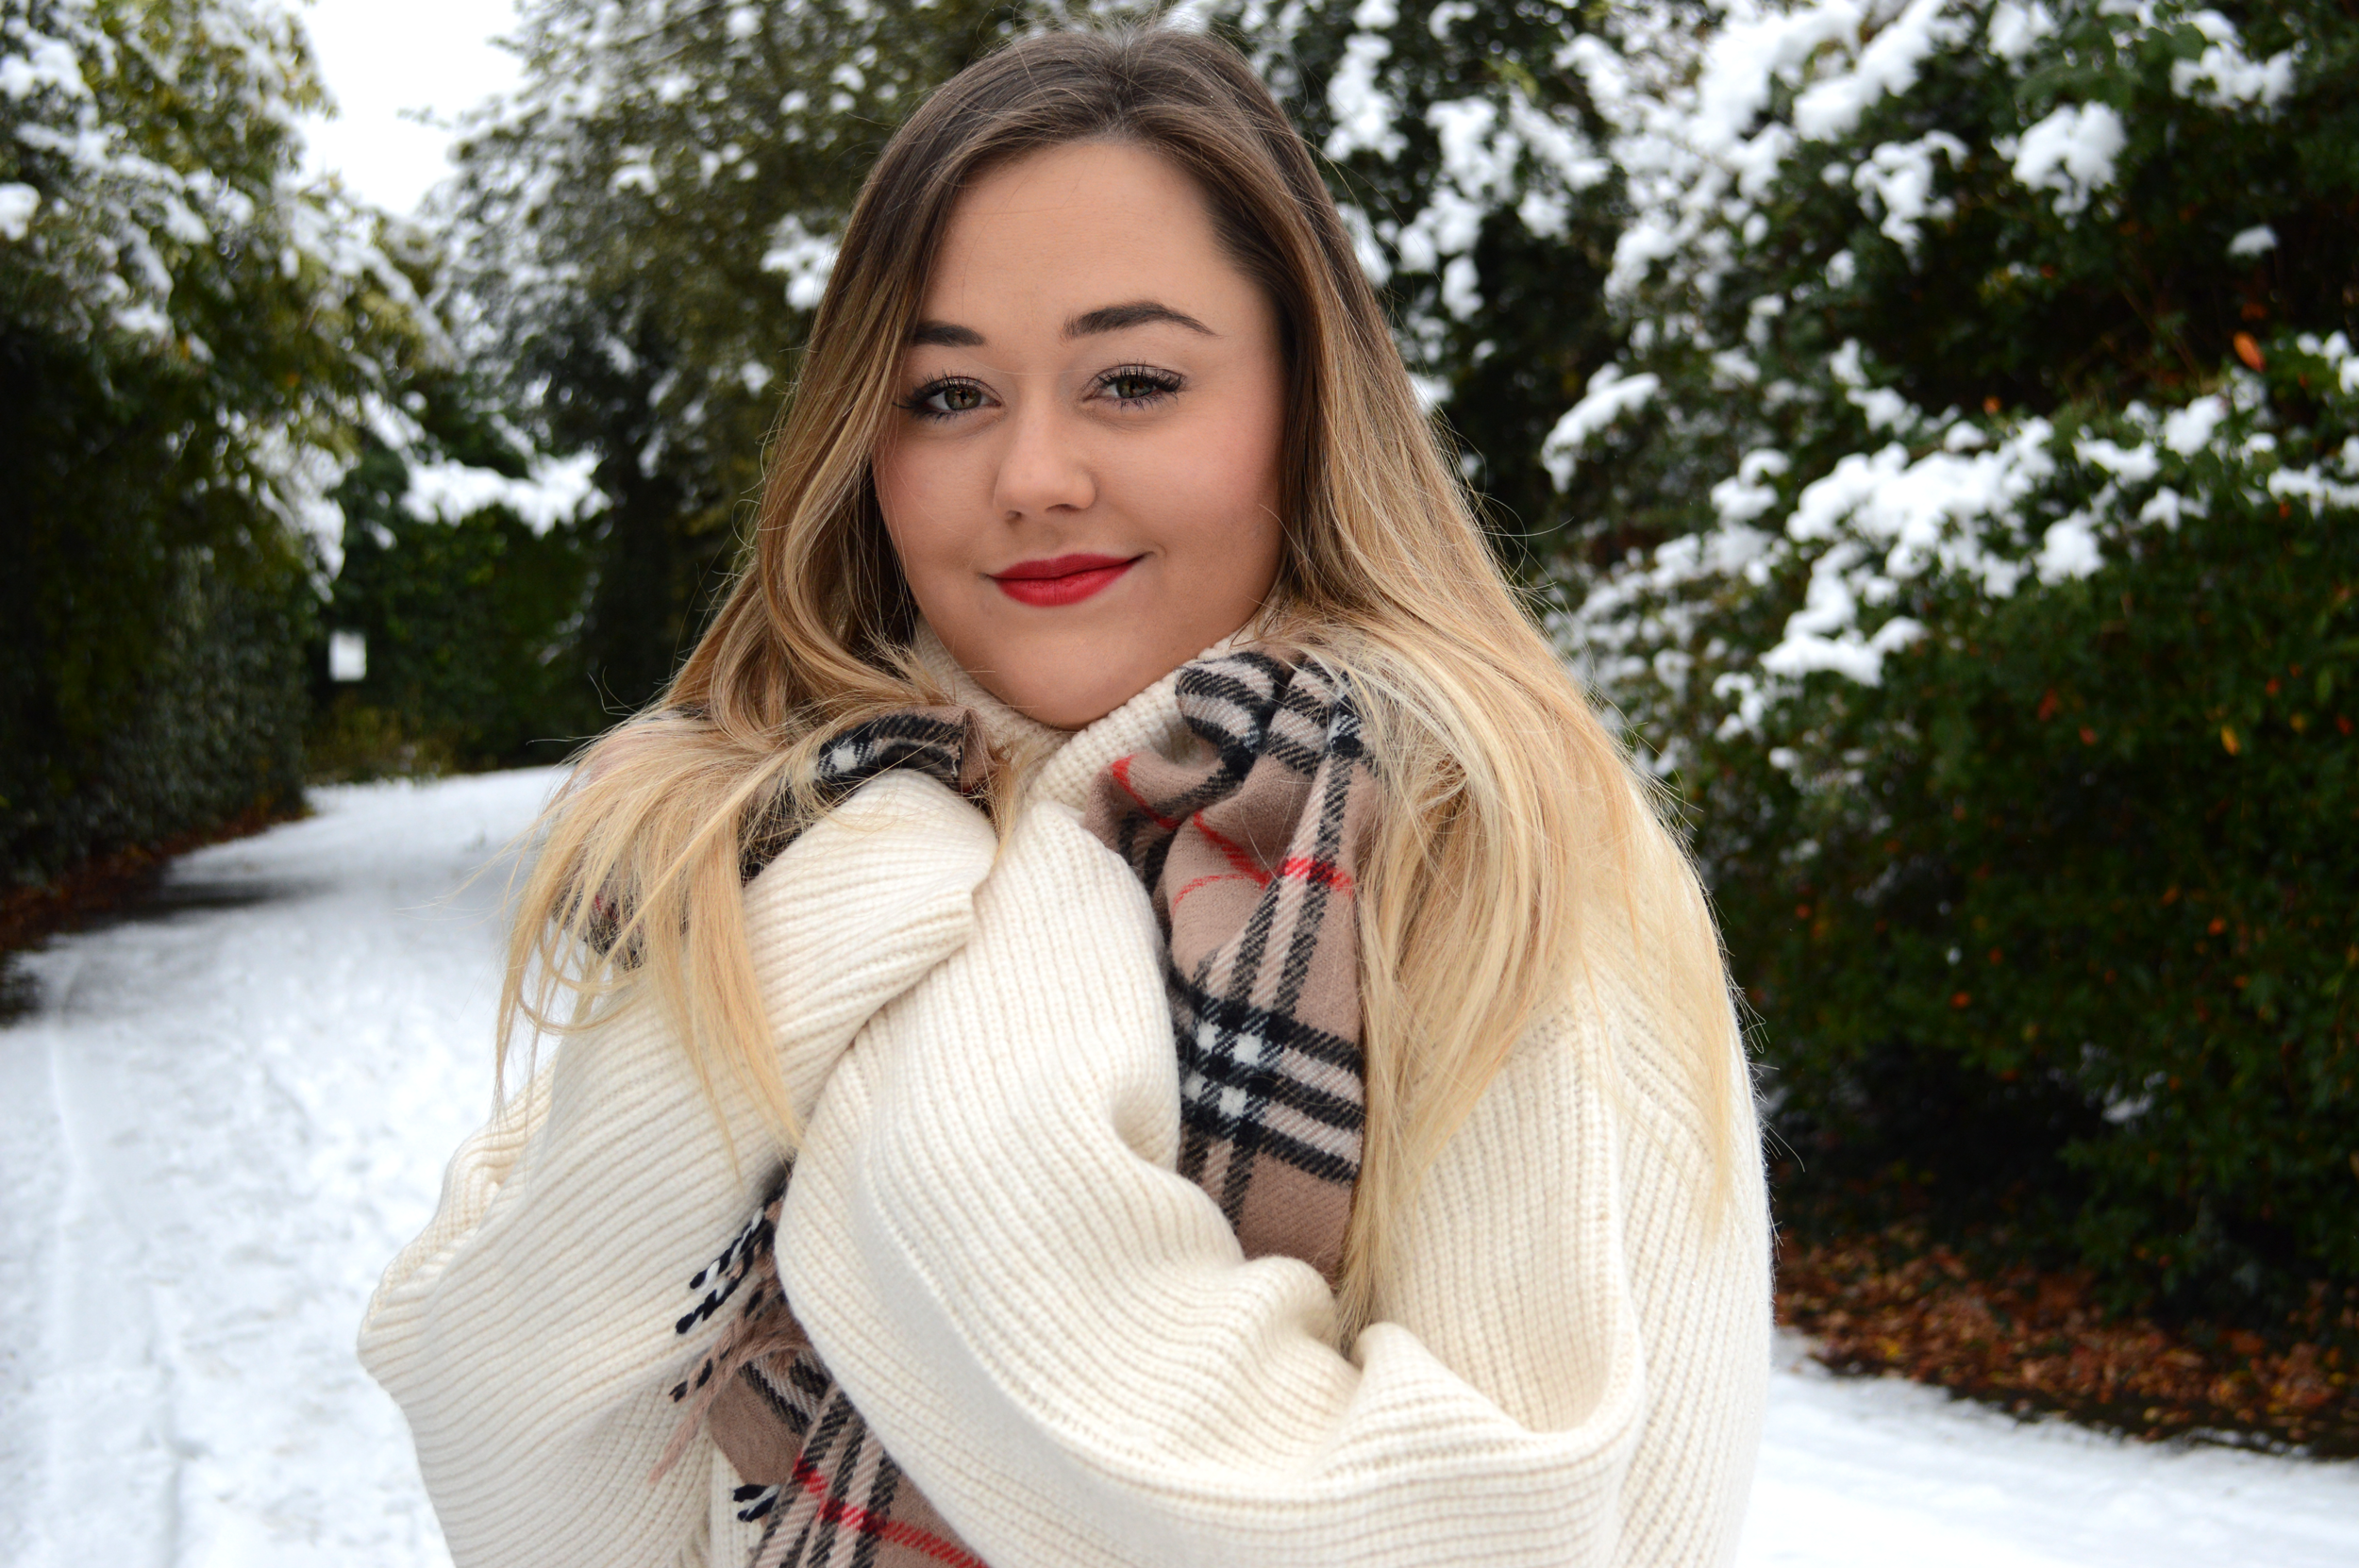 Why a red lip is more than just makeup | Red lipstick history. Hannah is in a cuddle H&M oversize jumper dress in cream, with classic Burberry check cashmere scarf. Wearing red lipstick in the snow.